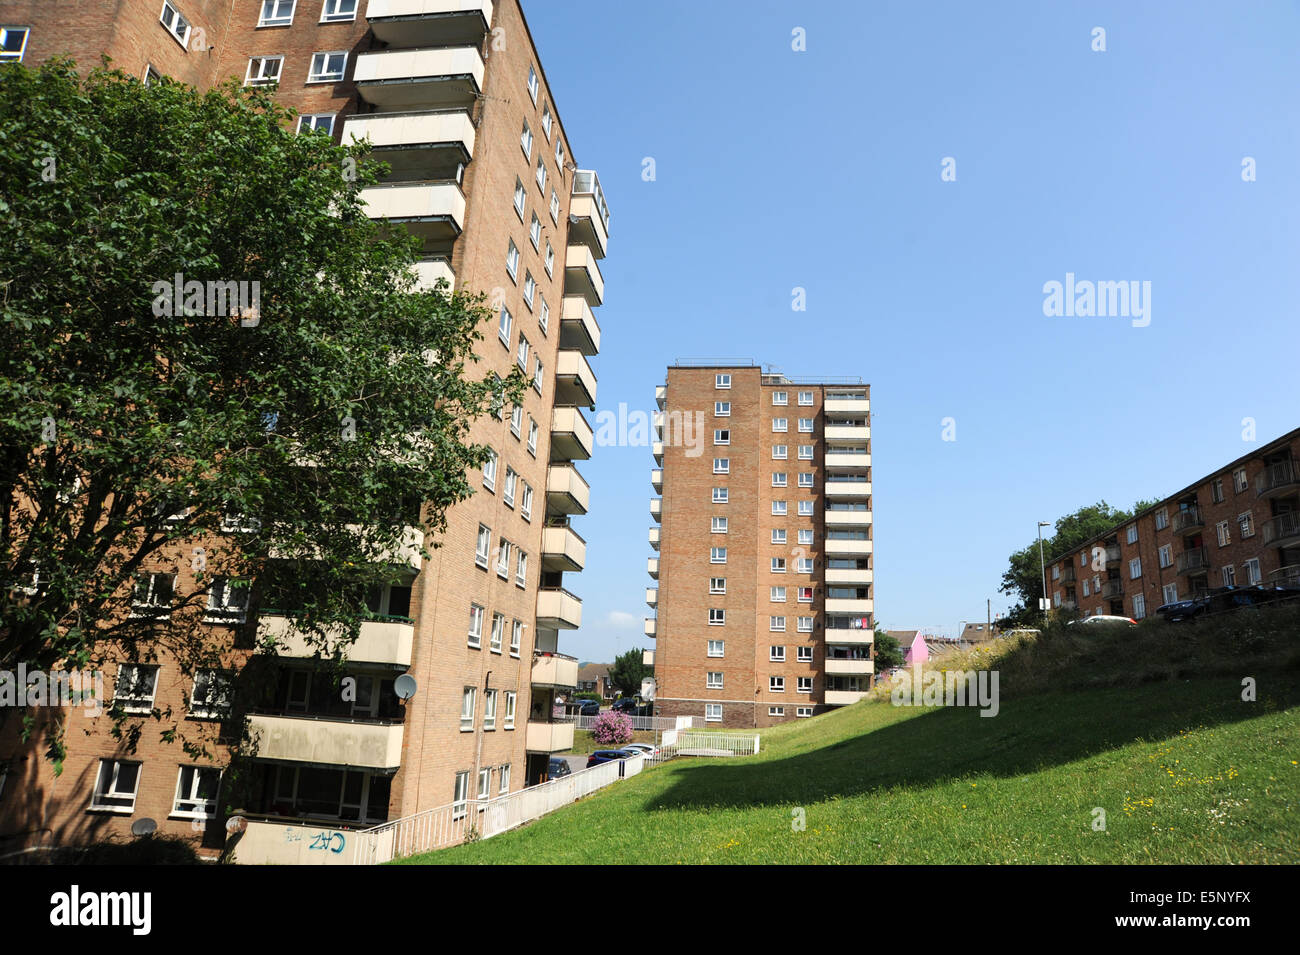 Brighton Sussex UK July 2014 - Red poppies growing wild amongst housing council estate Brighton city centre - Stock Image